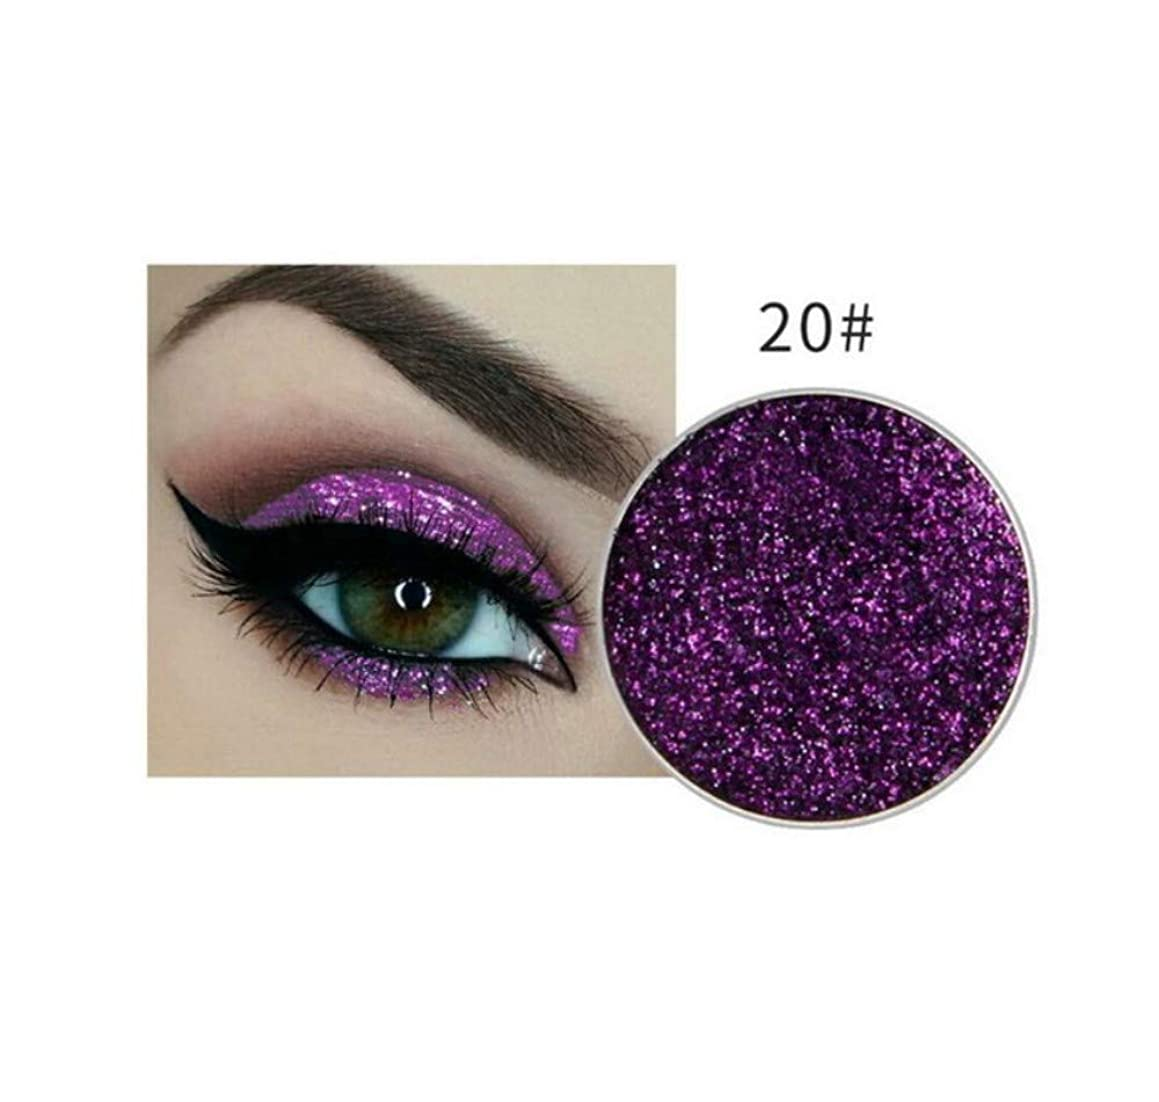 LMLM Eye Shadow Shimmer Pigment Loose Powder Makeup Nude Eye Shadow Metallic Gold Eye Shadow Powder Makeup Glitter Eyeshadow